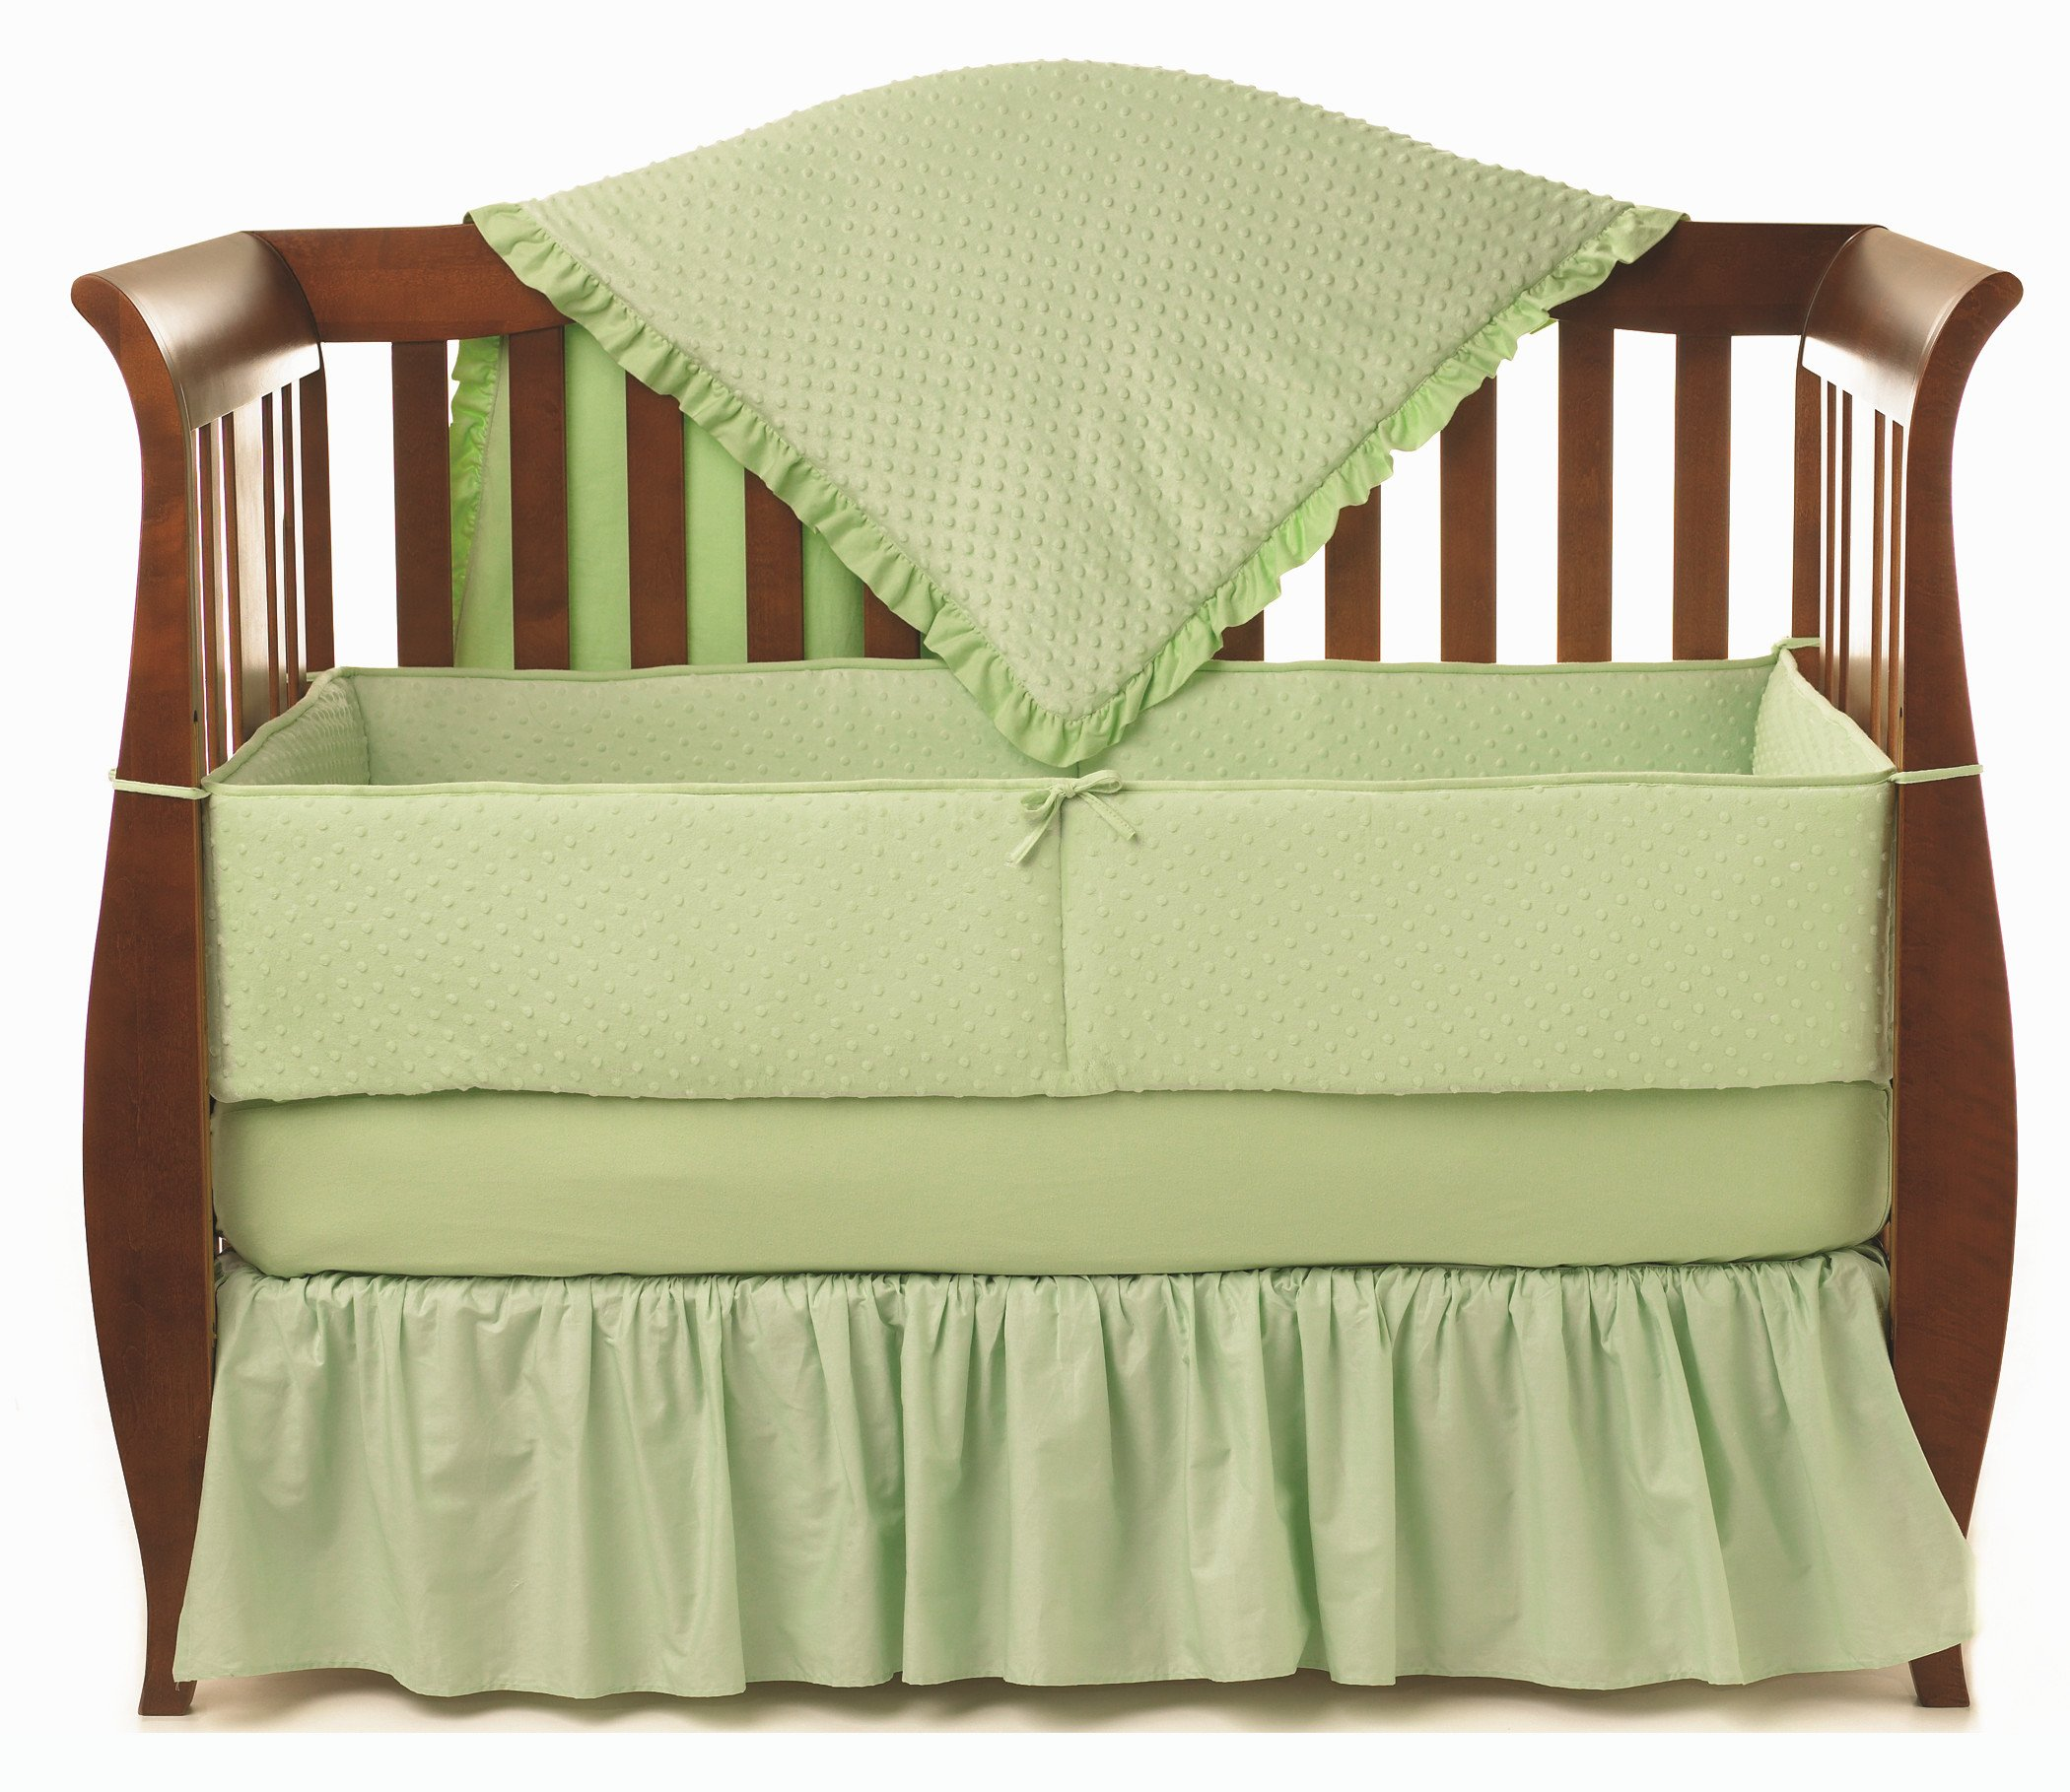 American Baby Company Heavenly Soft Minky Dot 4-Piece Crib Bedding Set, Celery